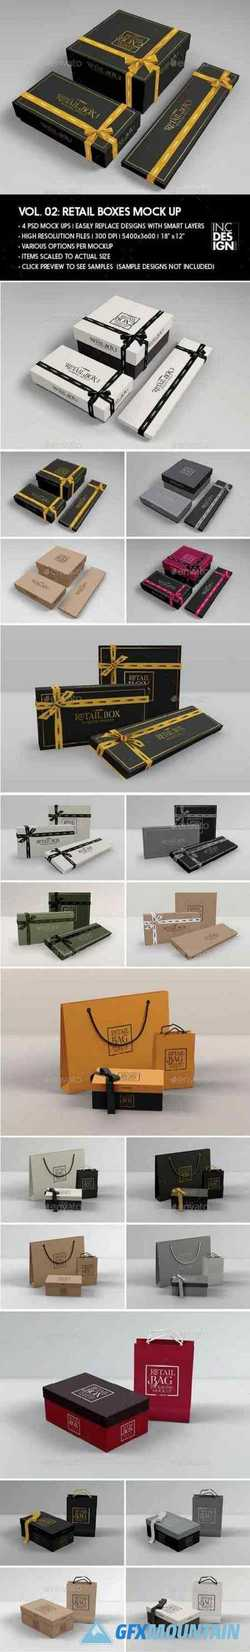 RETAIL BOXES VOL.2: BAG & BOX PACKAGING MOCK UPS V 1.2 - 19346258